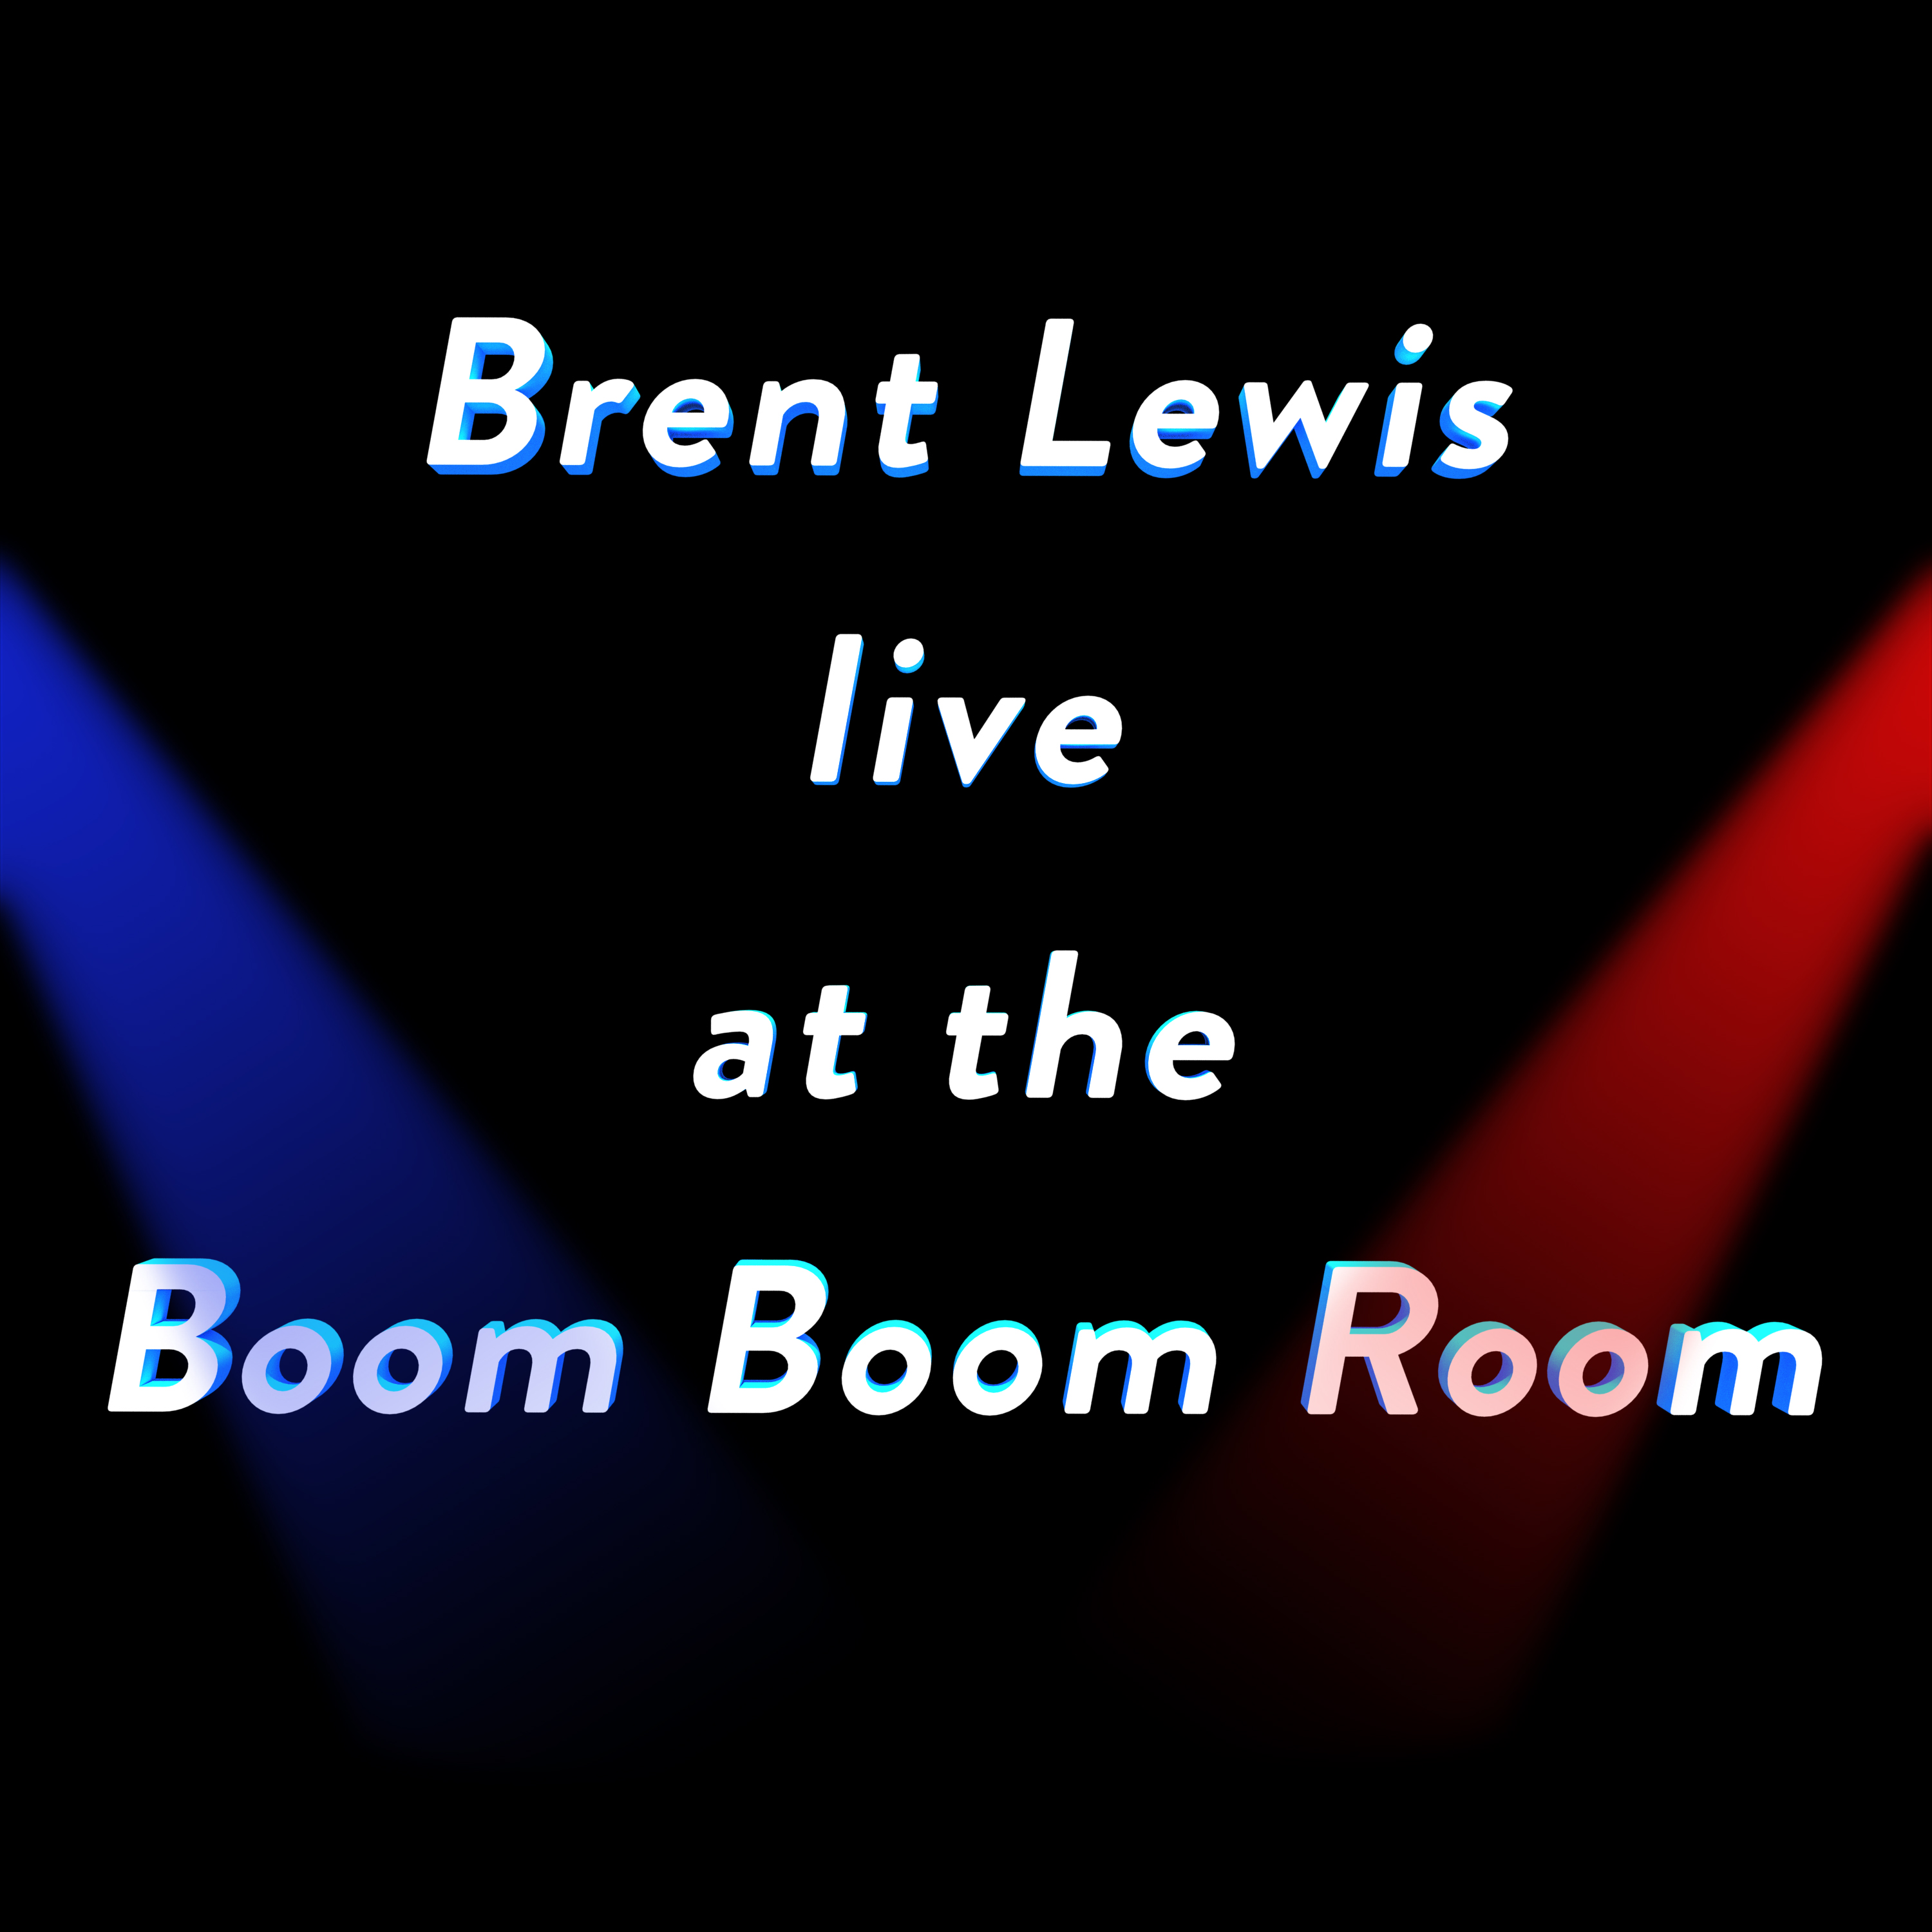 CD 21 – Live at the Boom Boom Room